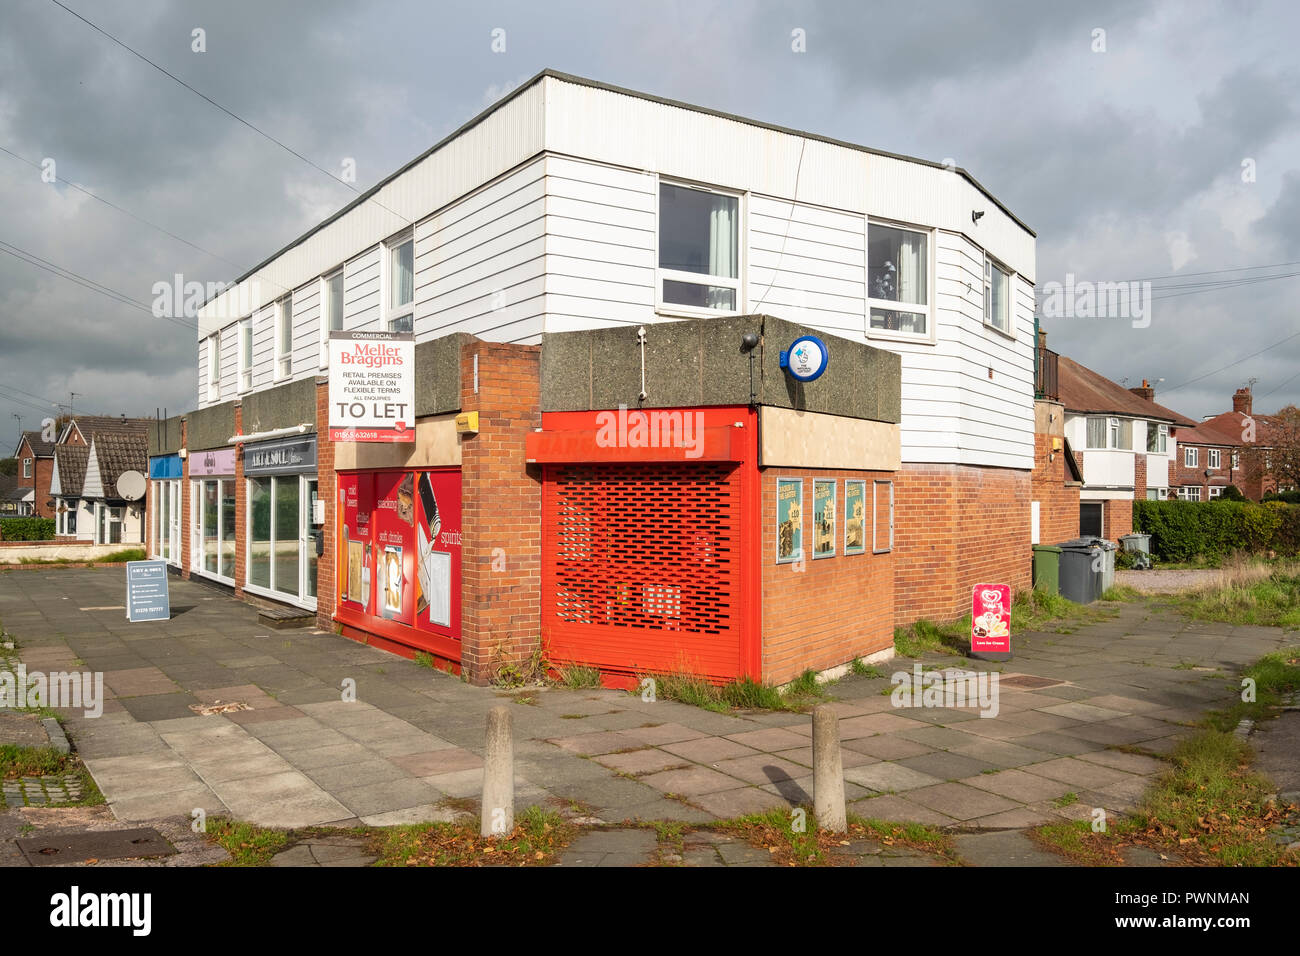 closed down and to let Bargain Booze shop in Sandbach Cheshire UK - Stock Image